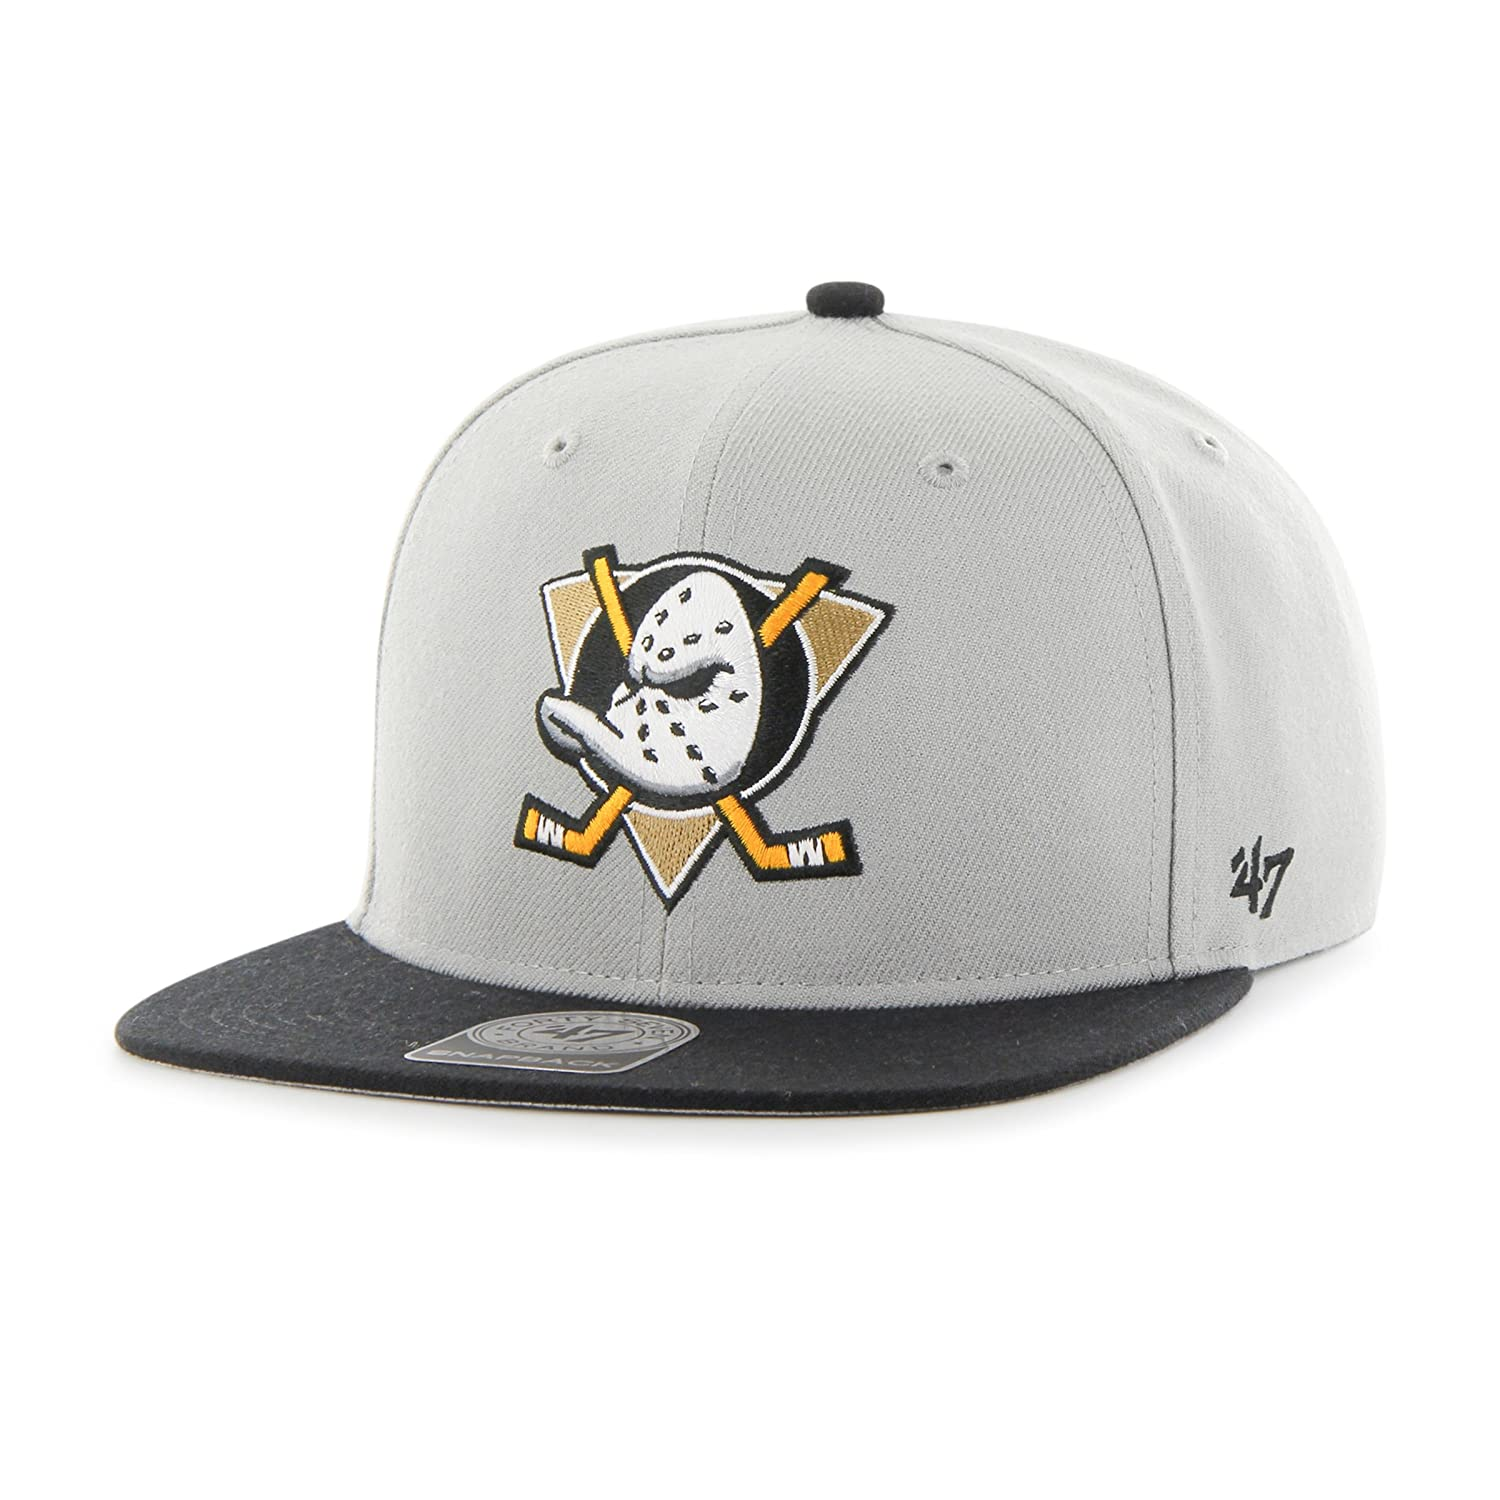 b408dd03485714 Amazon.com: '47 Brand Cap – NHL Anaheim Ducks Captain Snapback Gray size:  OSFA (One size fits any): Sports & Outdoors